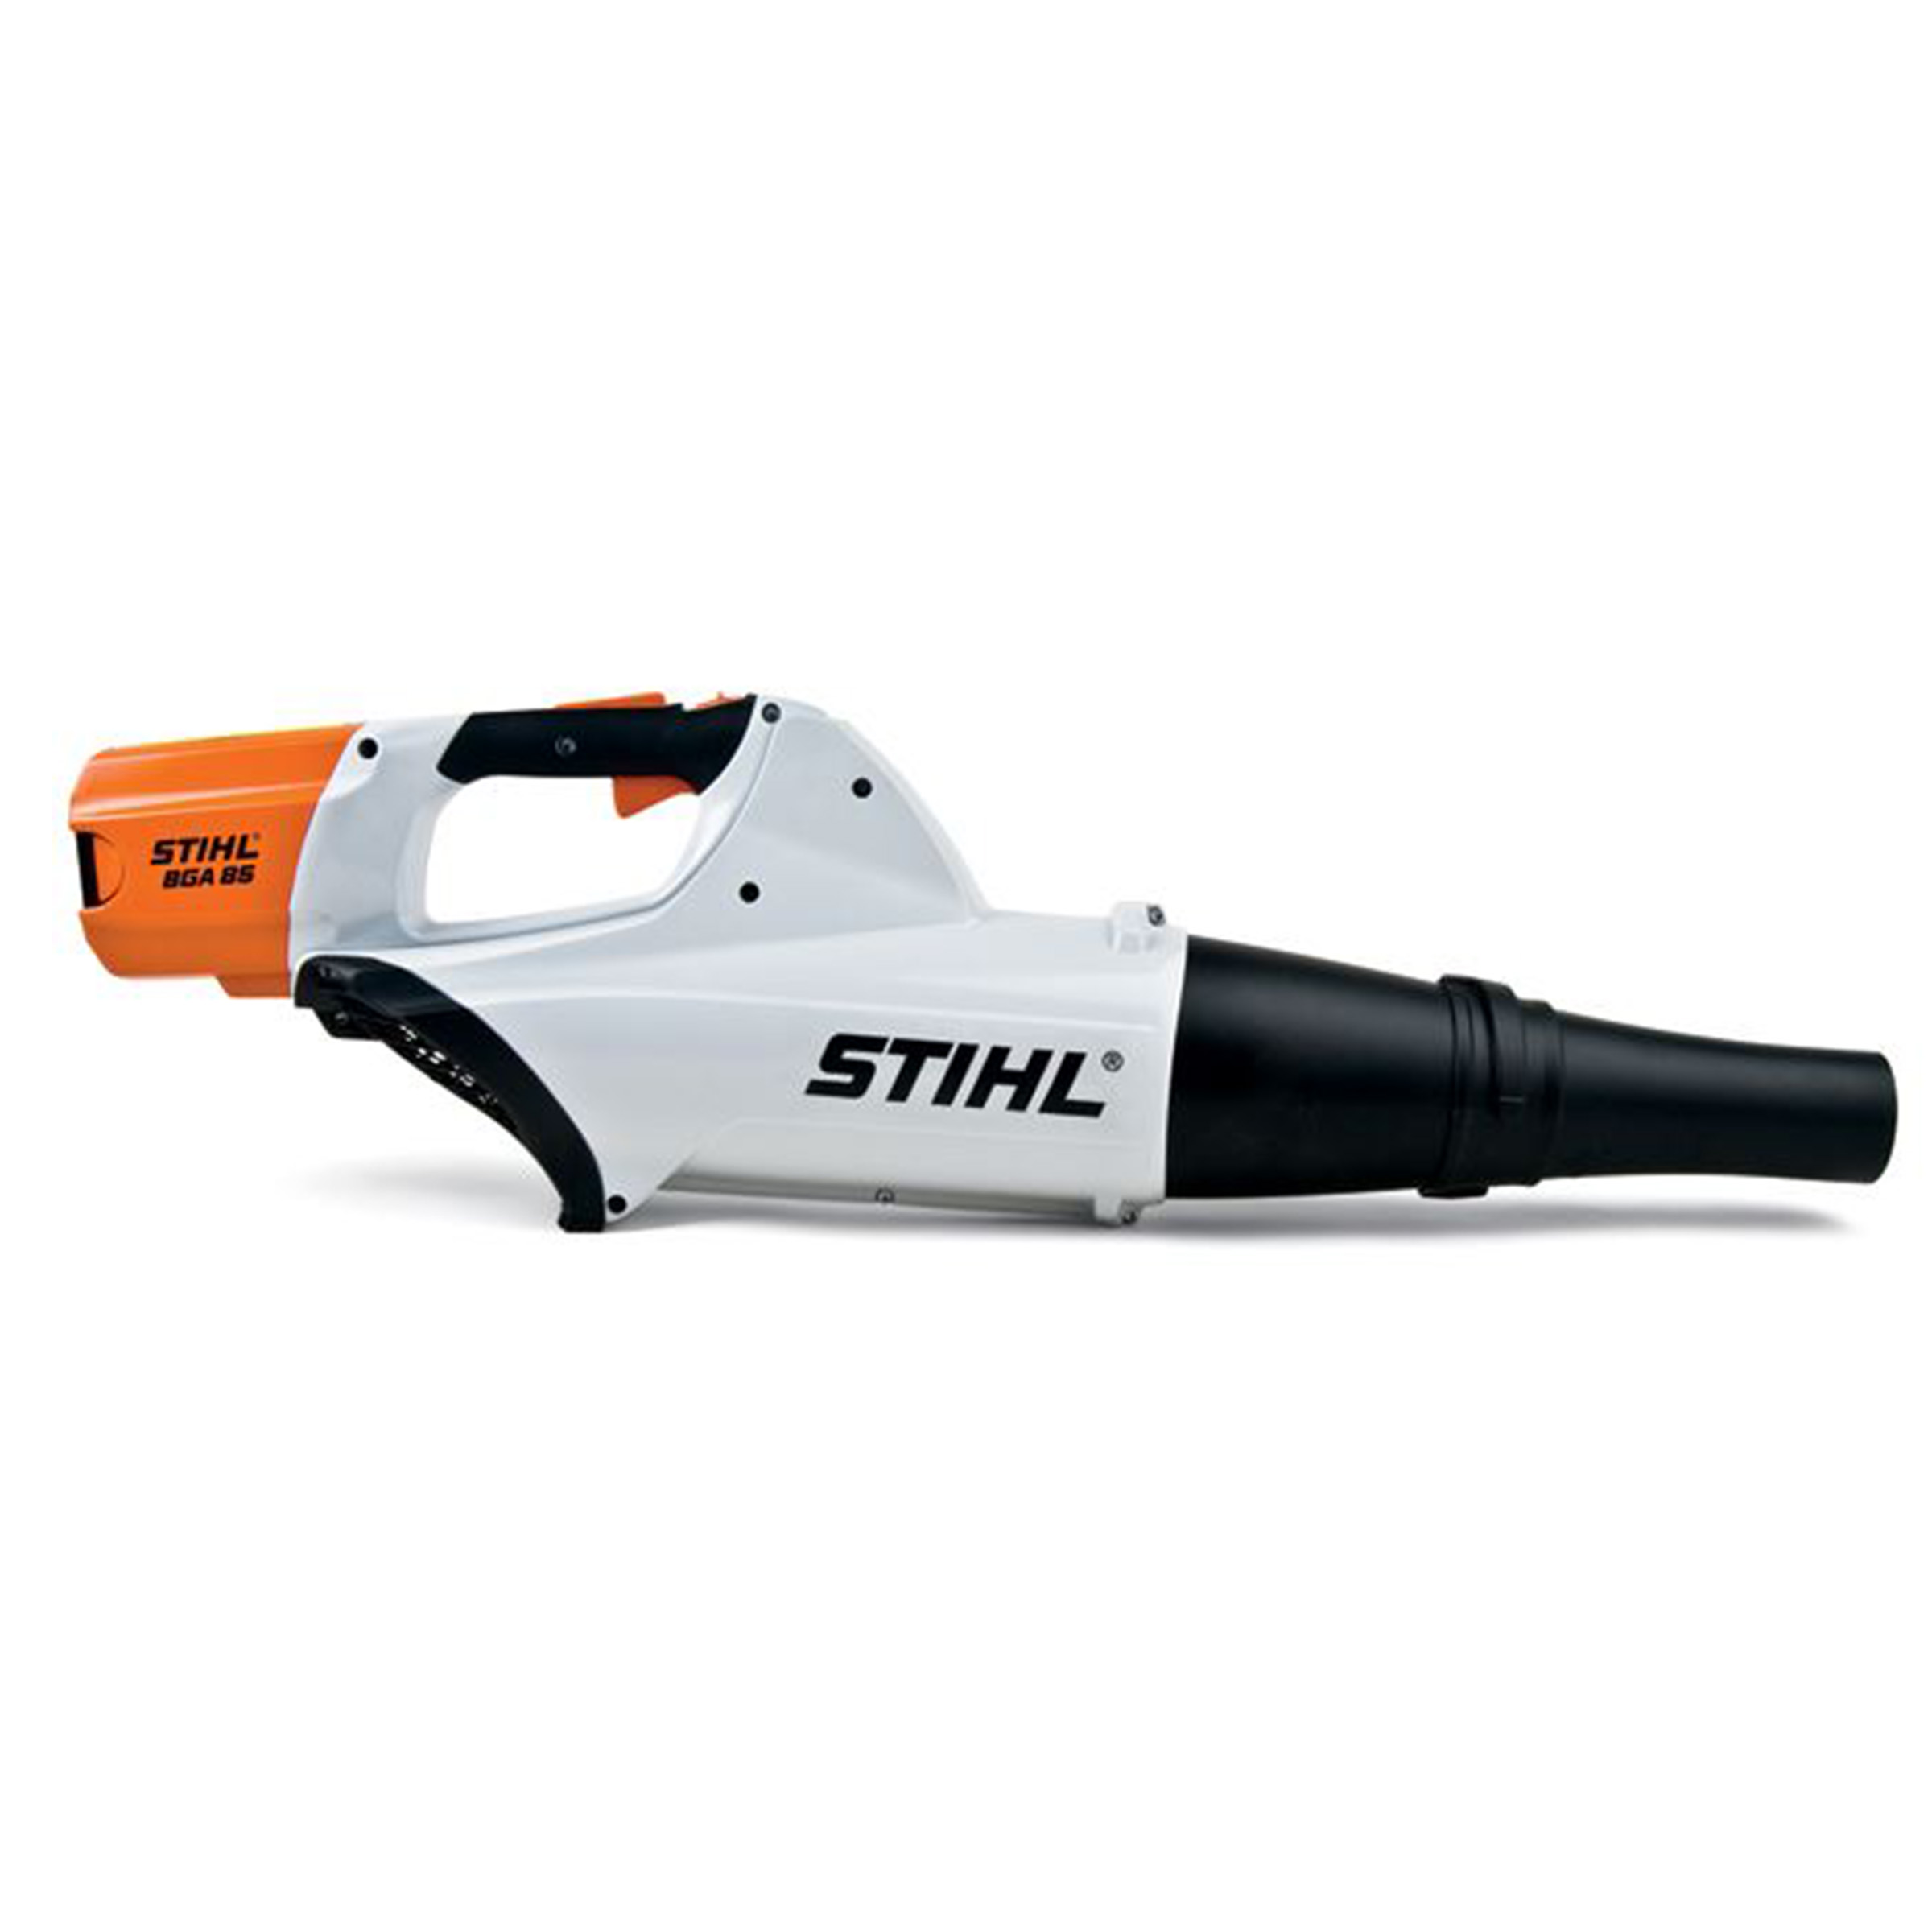 › Stihl › Stihl BGA 85 Battery Powered Handheld Blower #959915 #B64F15